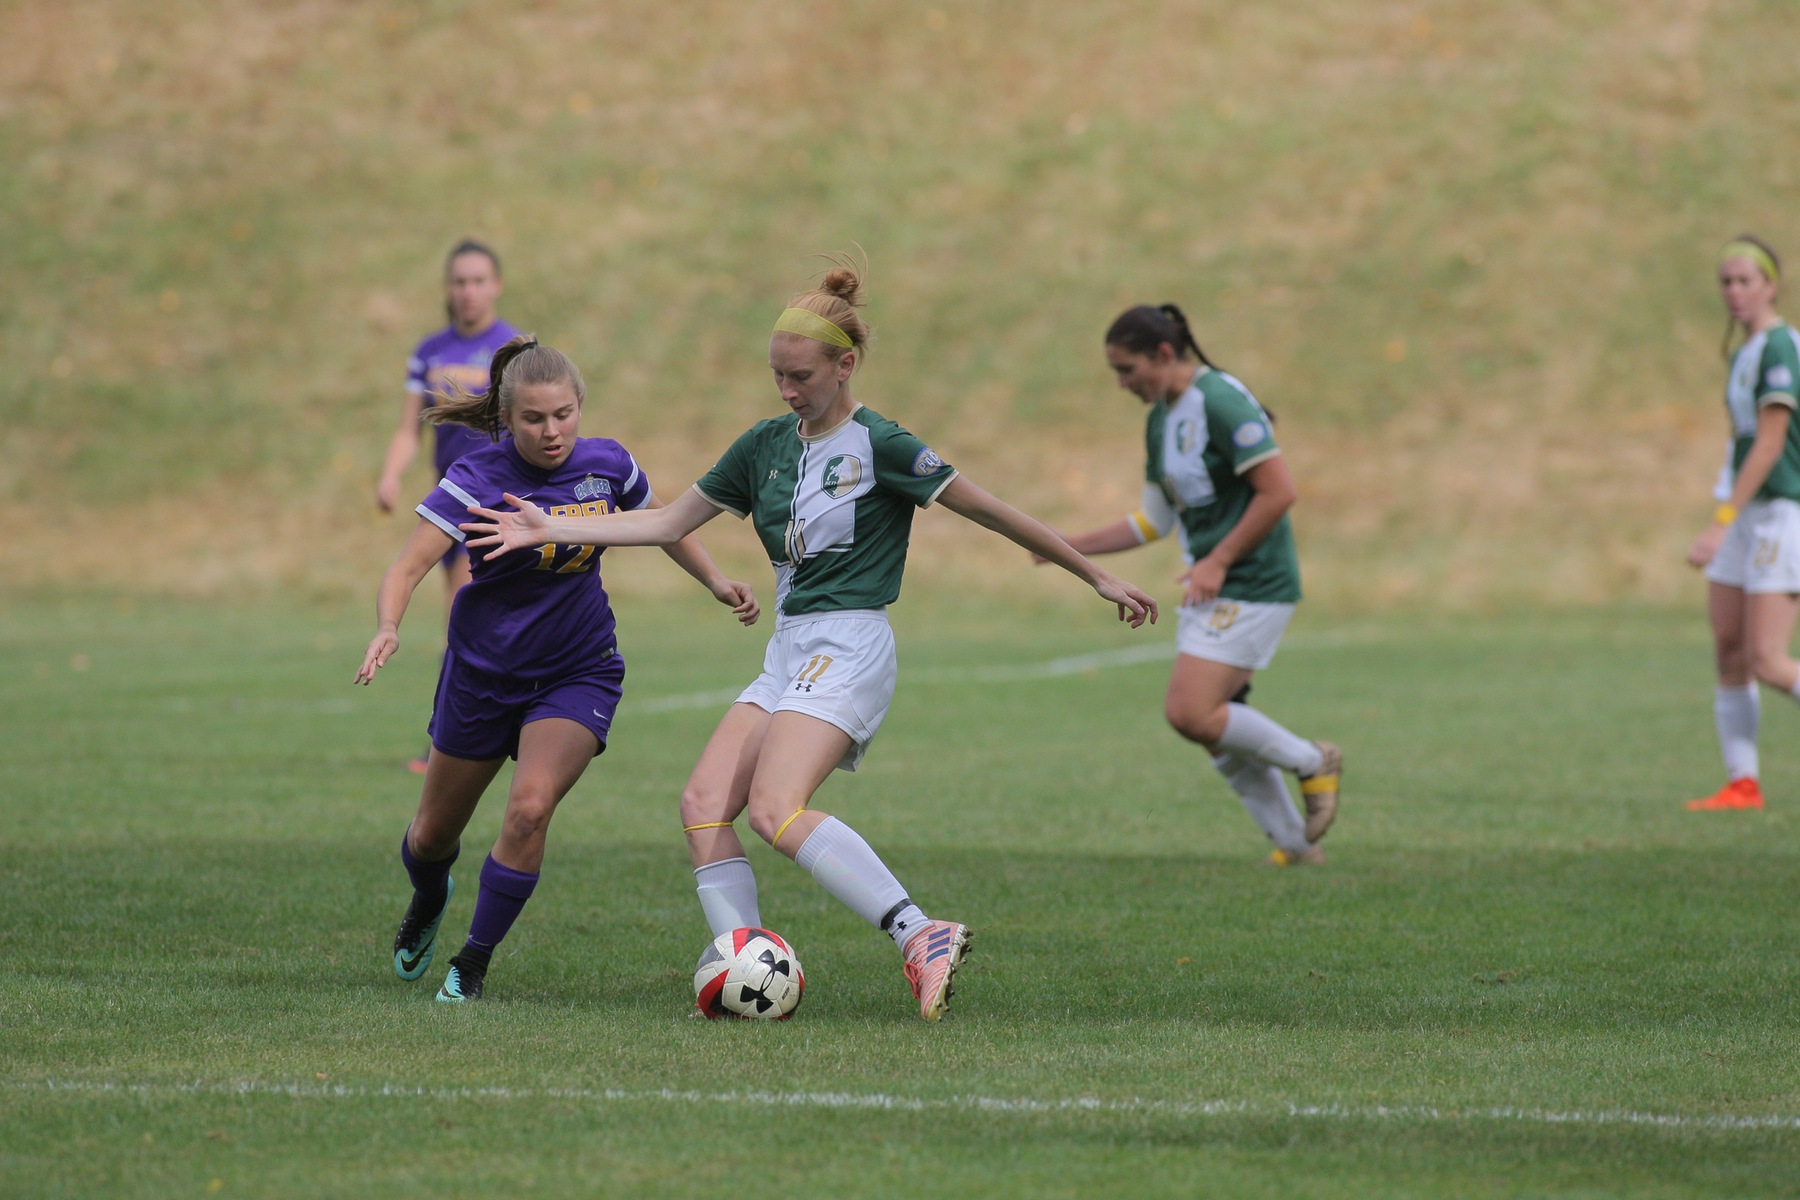 A Pair of Strikes From Chambers Lifts Bison to Victory over Lycoming